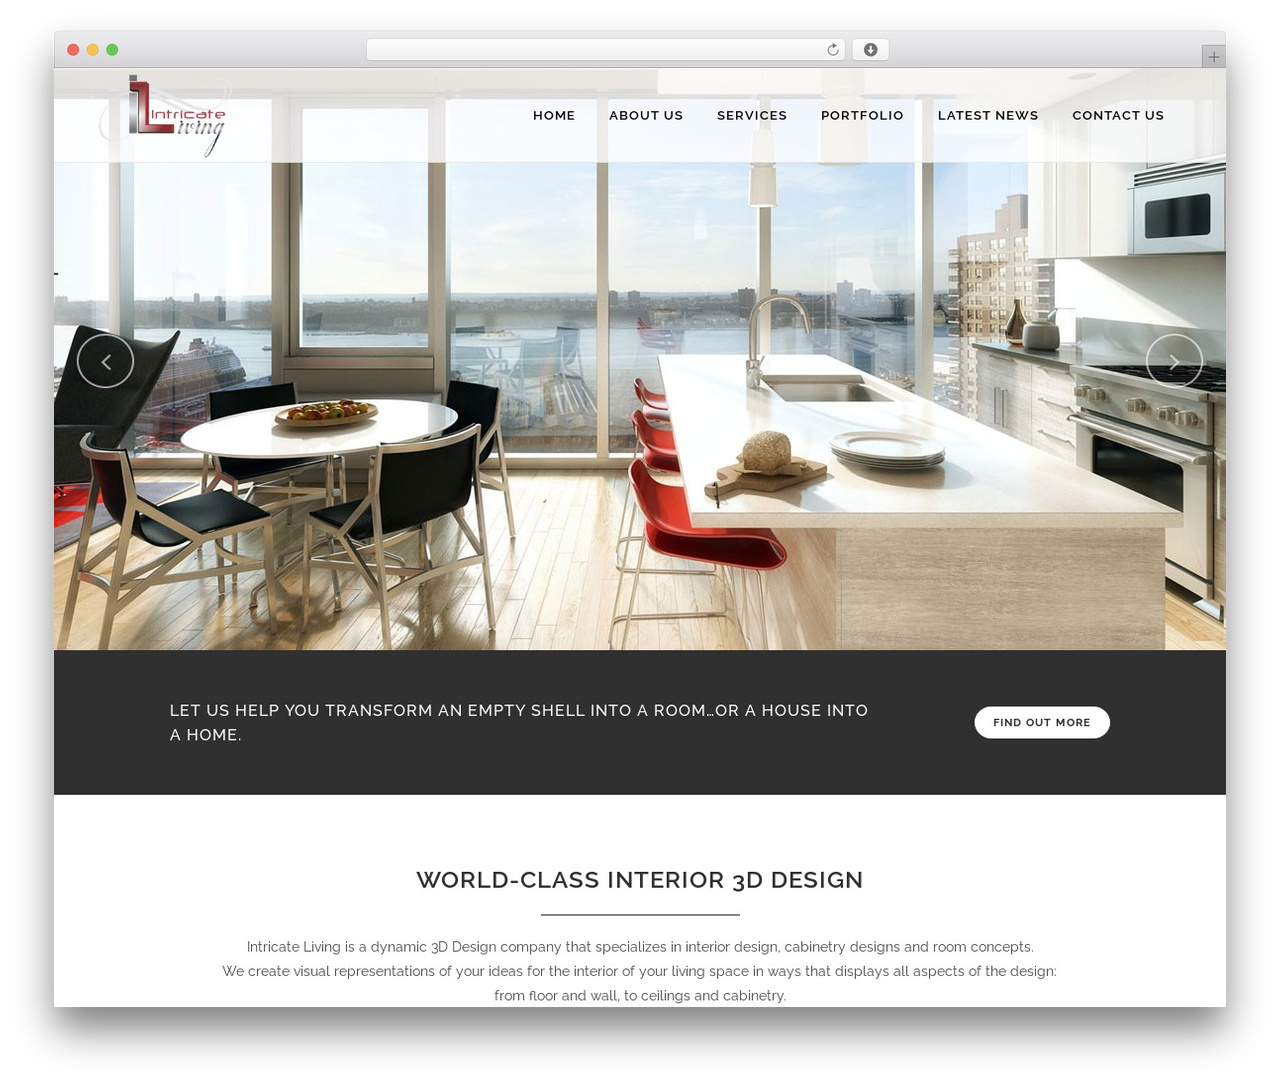 Bridge WordPress page template by Qode Interactive - intricateliving.com